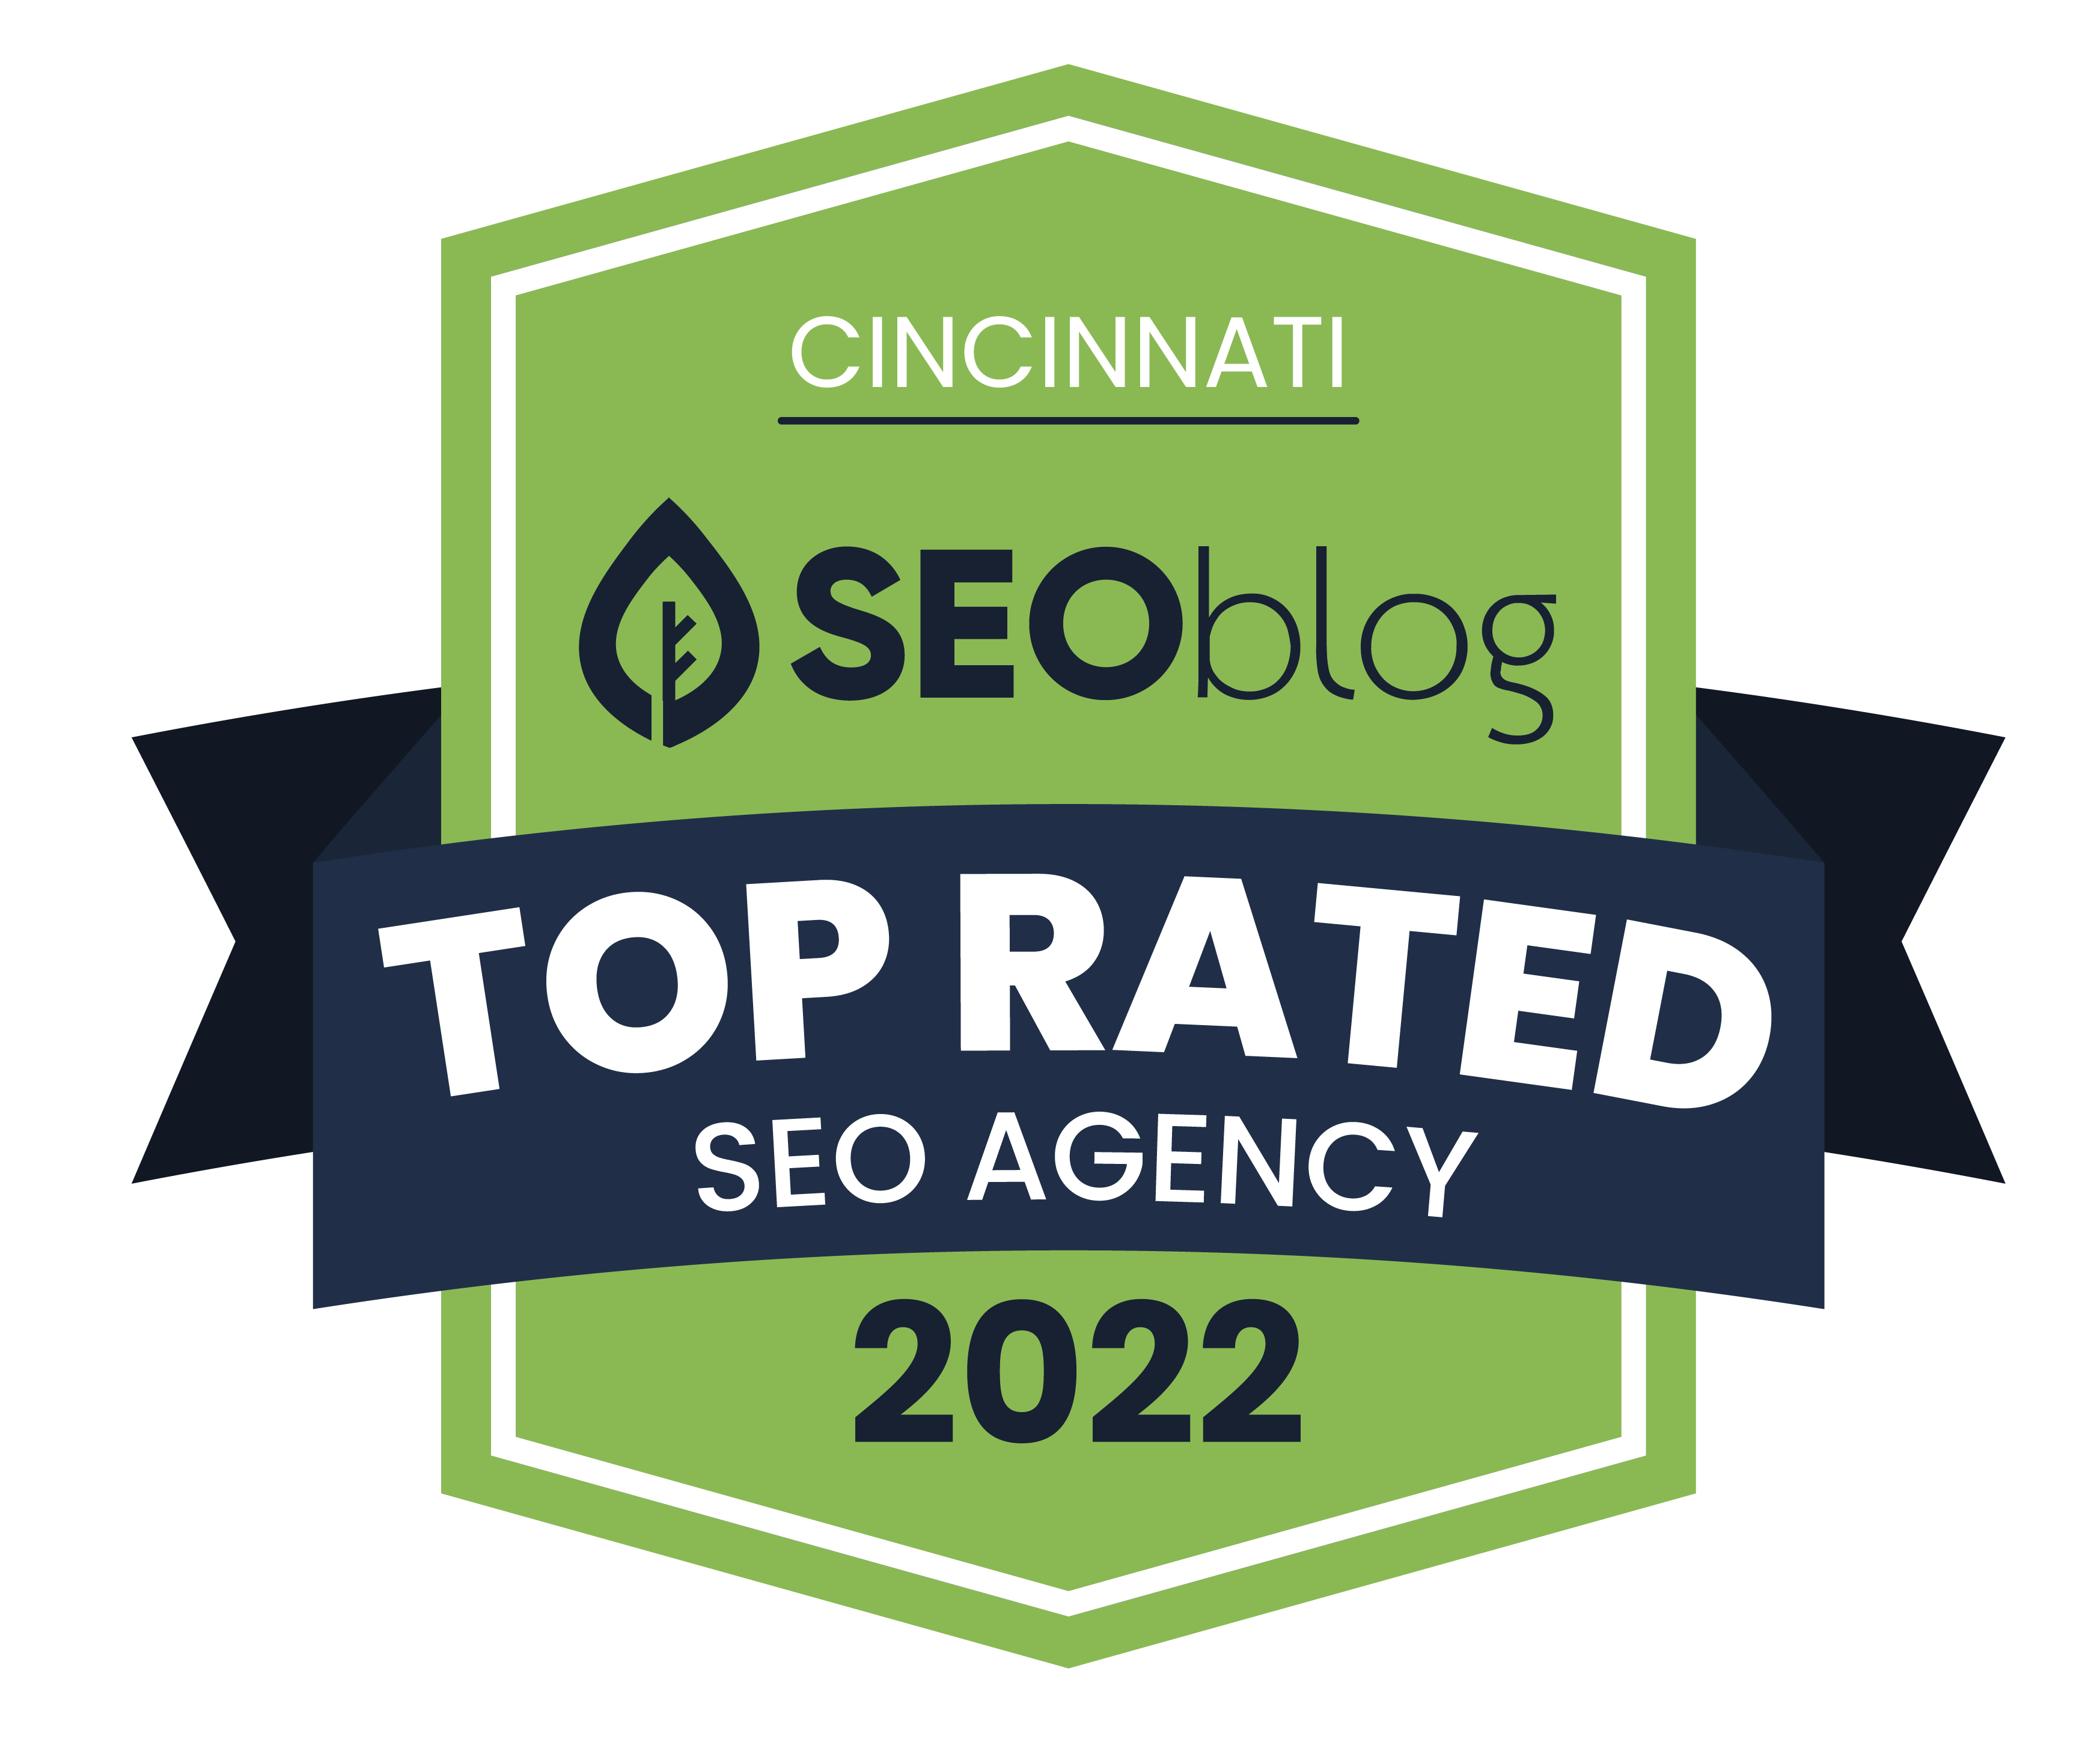 Cincinnati SEO Agency